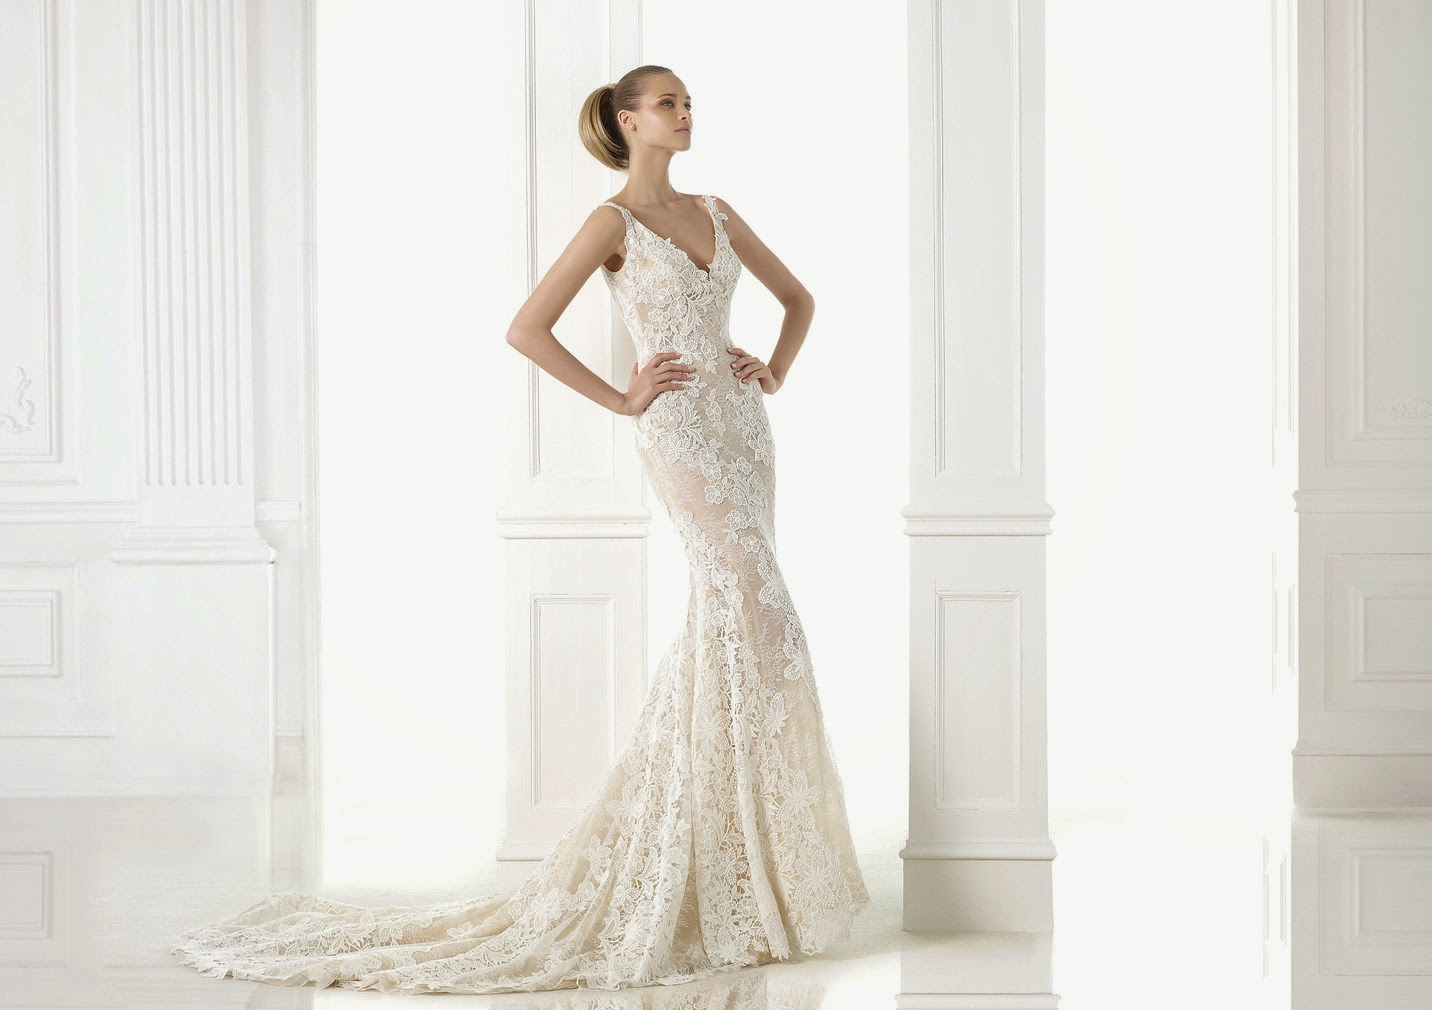 Wedding Gowns 2015: I Am A Woman In Love: 2015 Wedding Dresses: Lace Mermaid